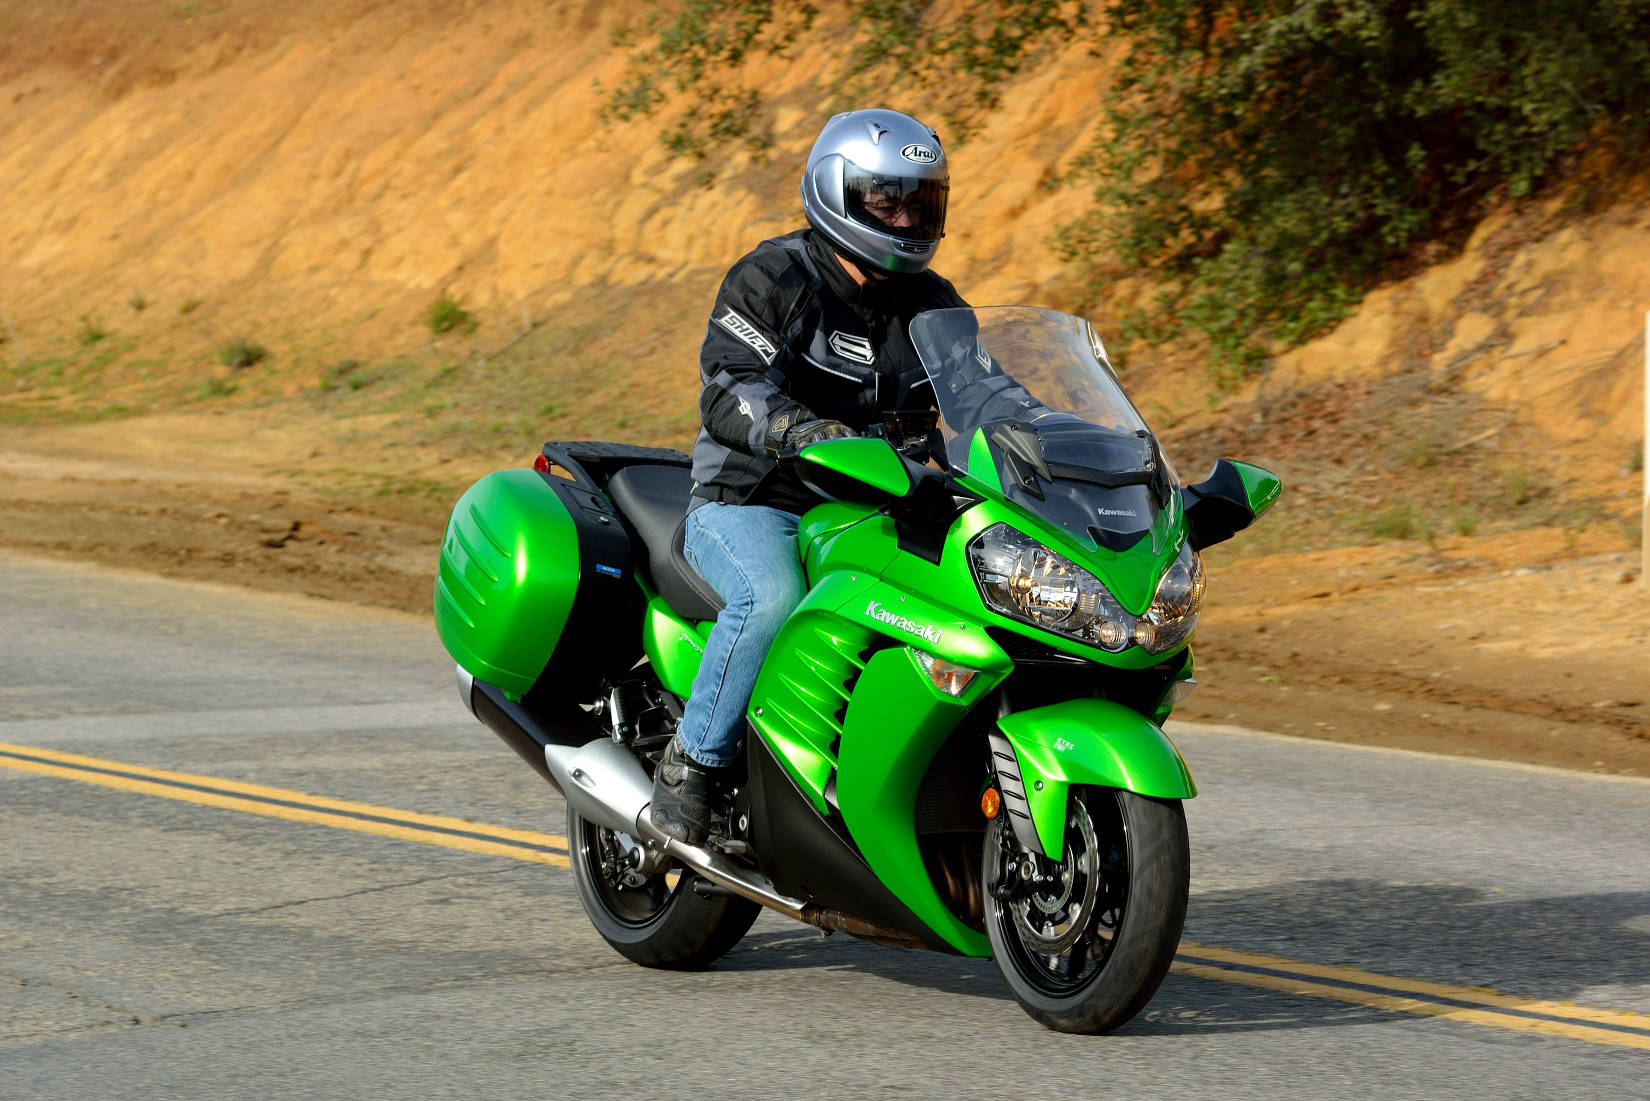 2015 Kawasaki Concours 14 ABS: MD Ride Review, Part Two